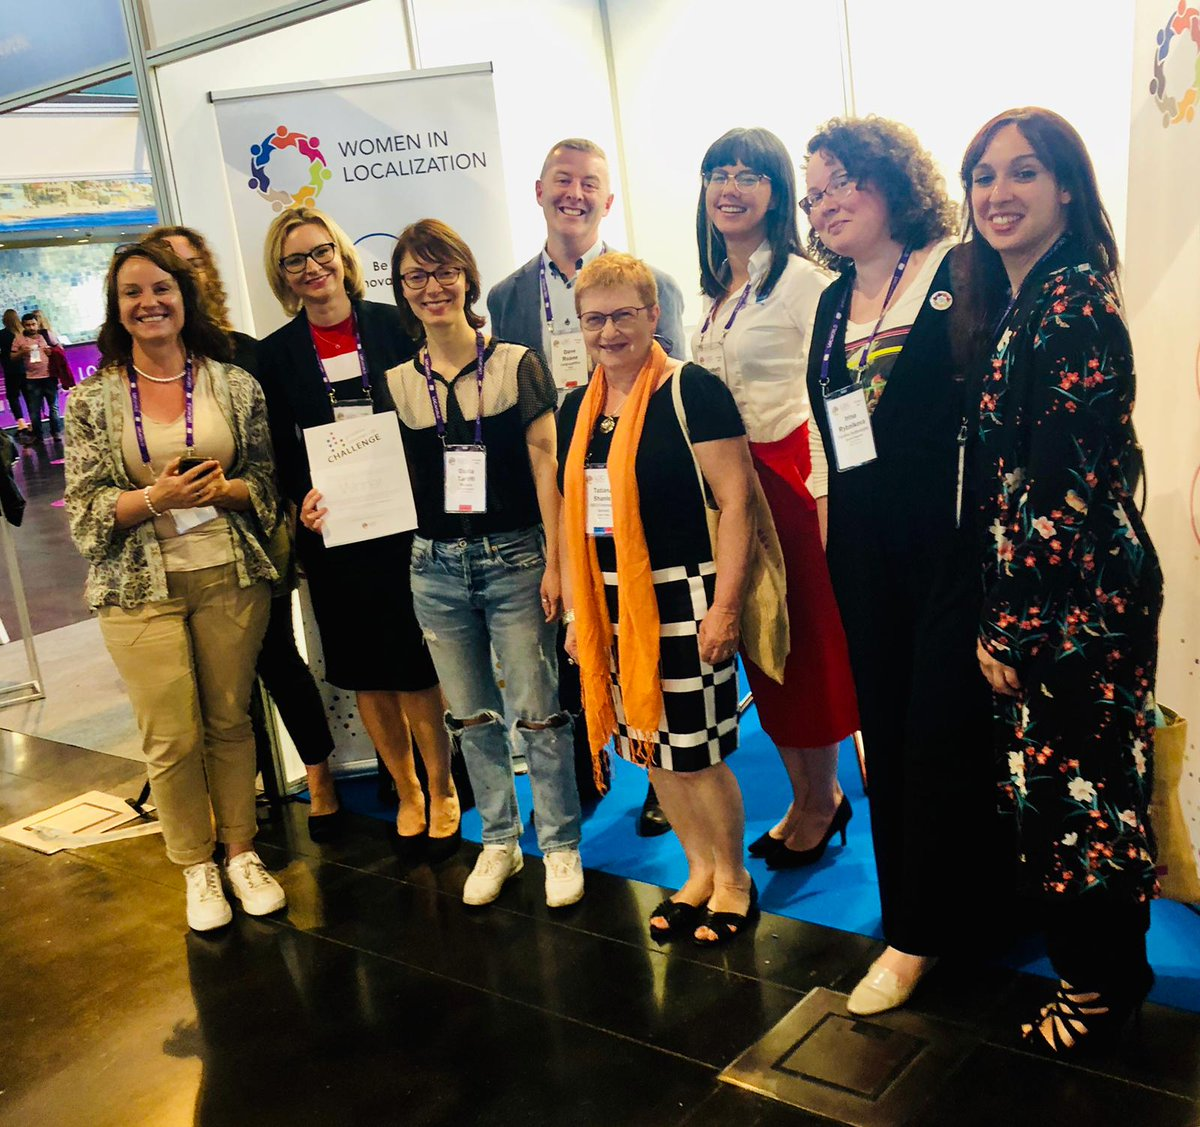 Another glass ceiling broken, well done @giuliaida on winning the sixth running of the #l10nPIC  with the ladies from #womeninl10n st #LocWorld40<br>http://pic.twitter.com/gZhLkKX3zc